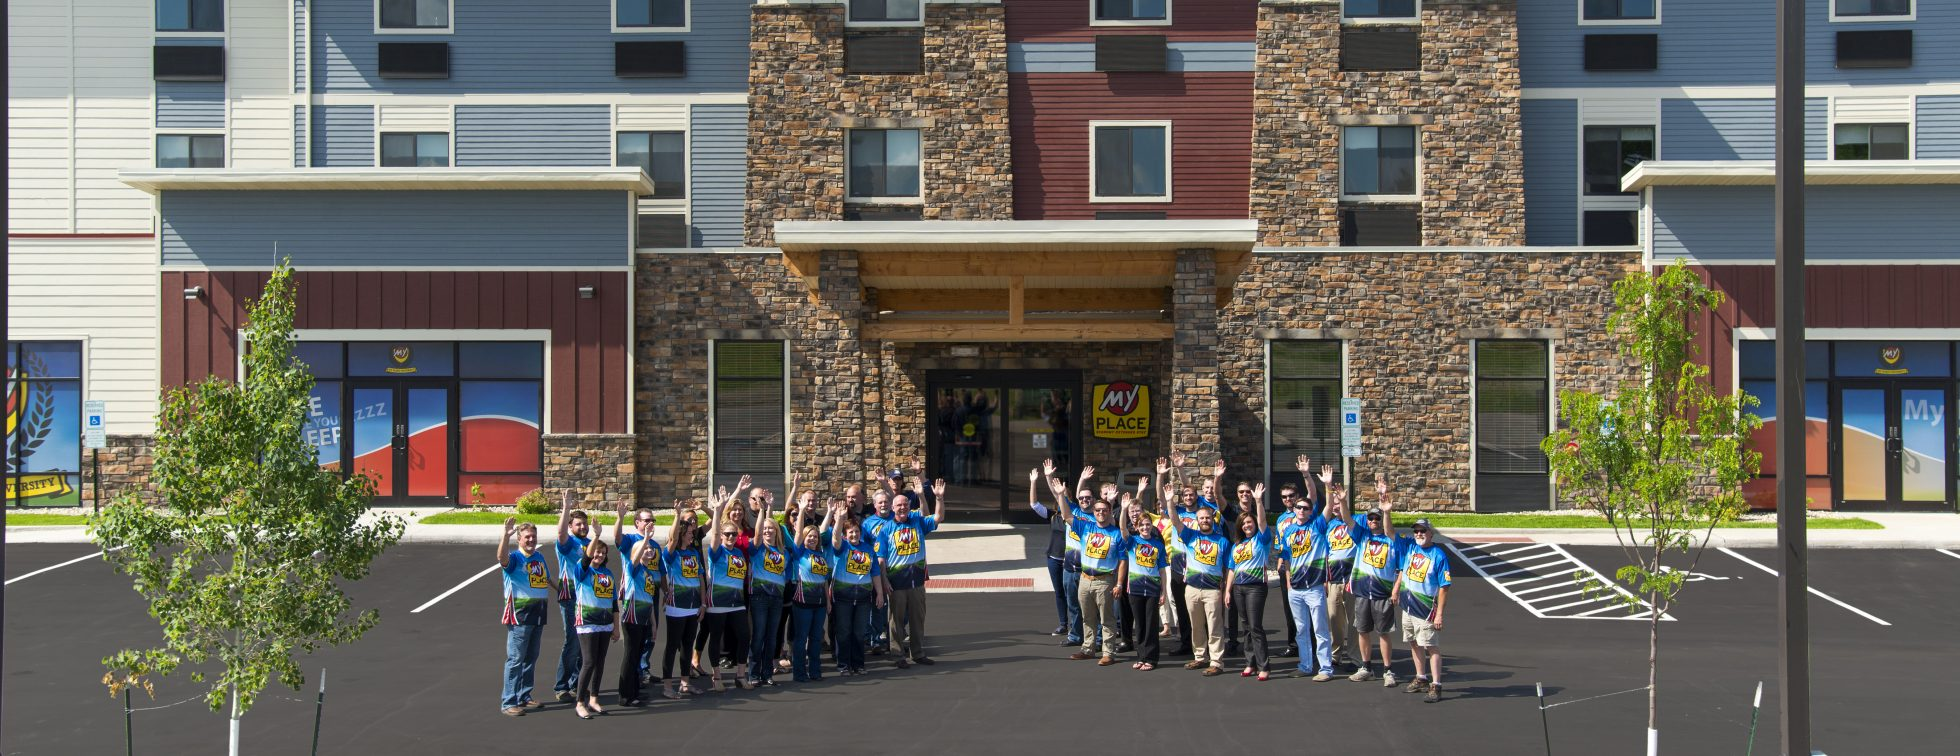 Several team members waving outside of a My Place Hotel